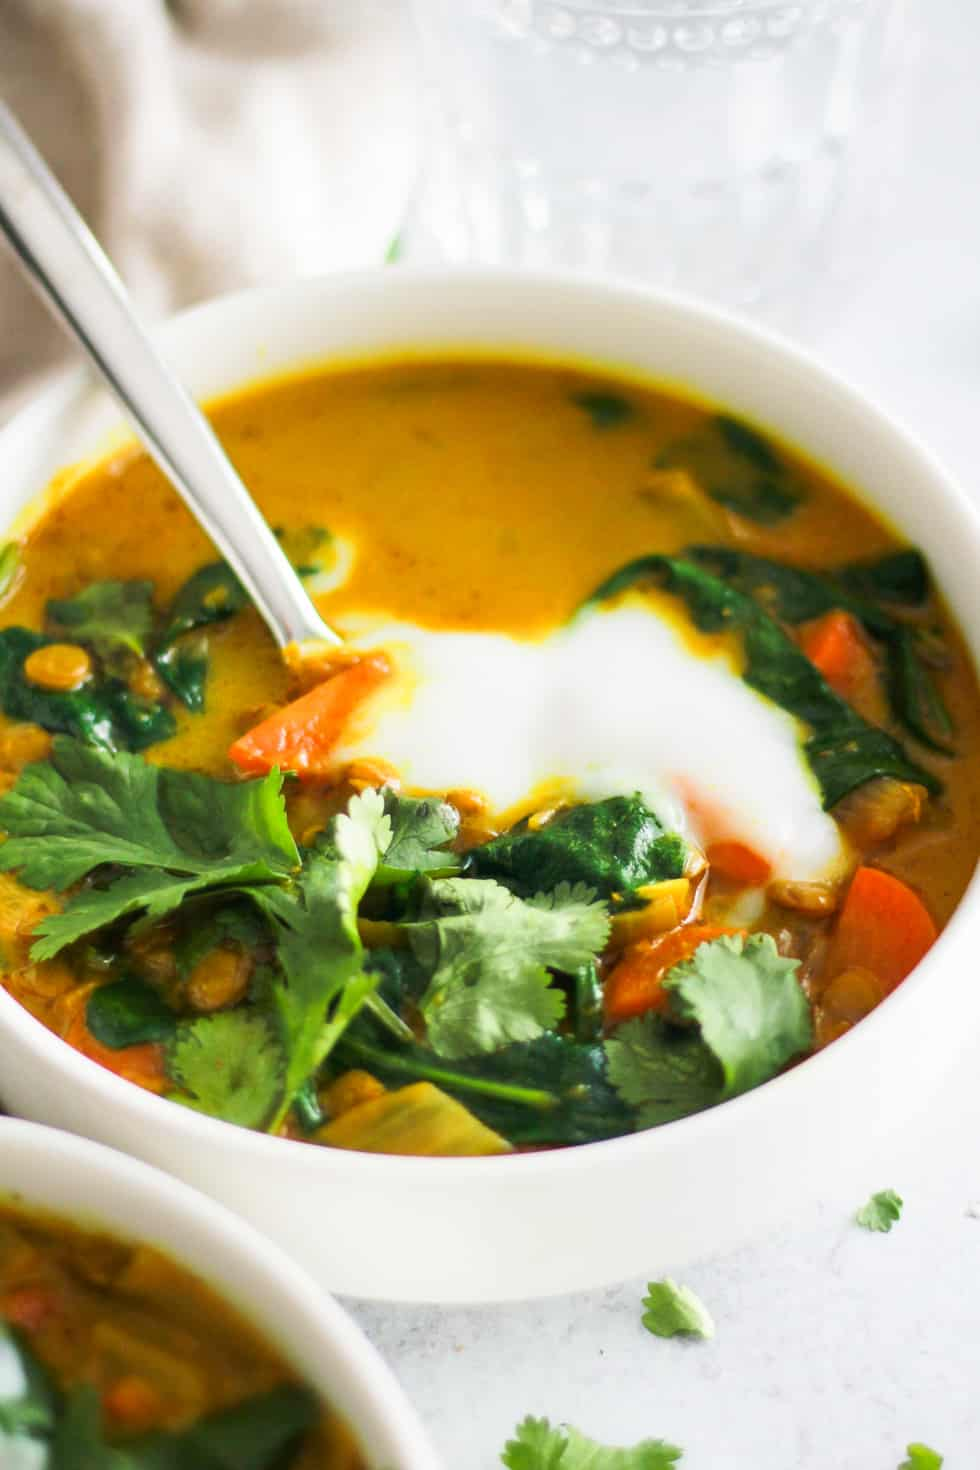 Yellow soup in white bowl with yogurt and cilantro topping.